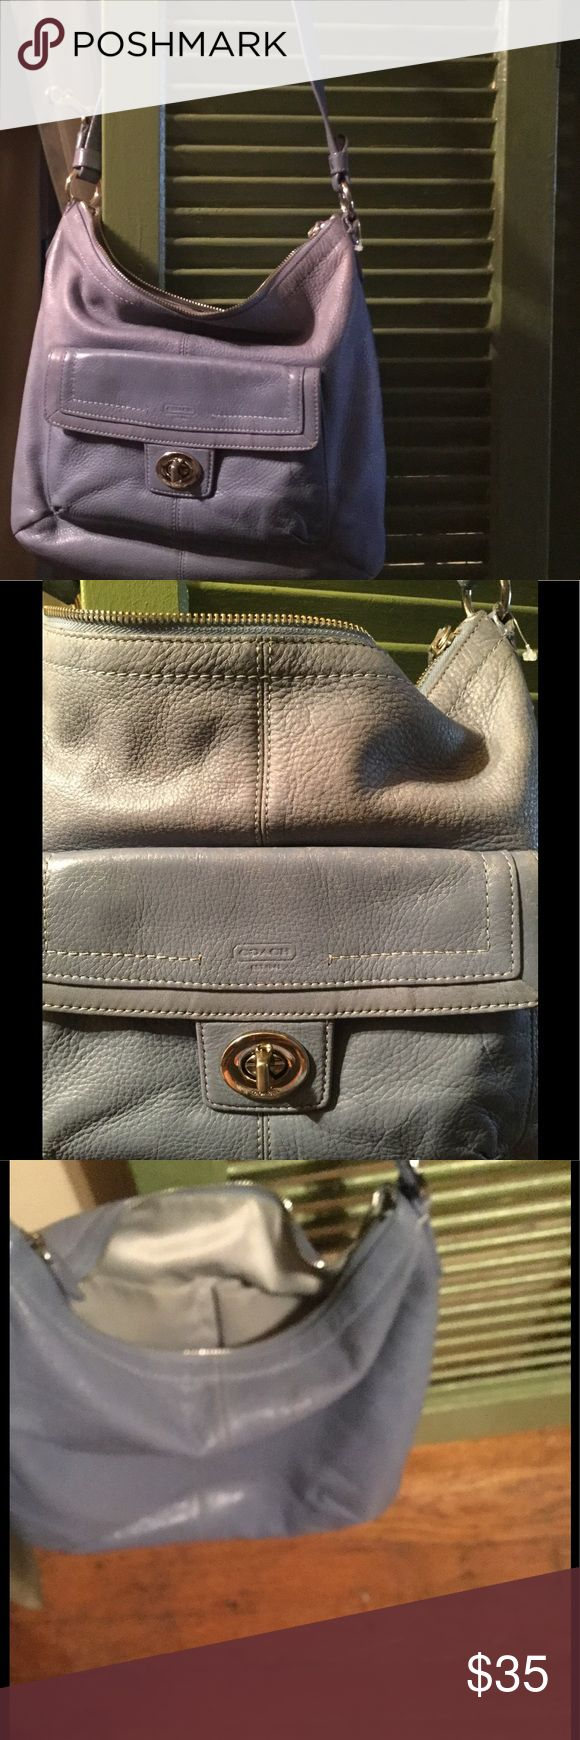 Coach leather bag Coach leather bag shoulder strap ,bag has little discoloration on it ,bag still has  life left to be loved... Coach Bags Shoulder Bags